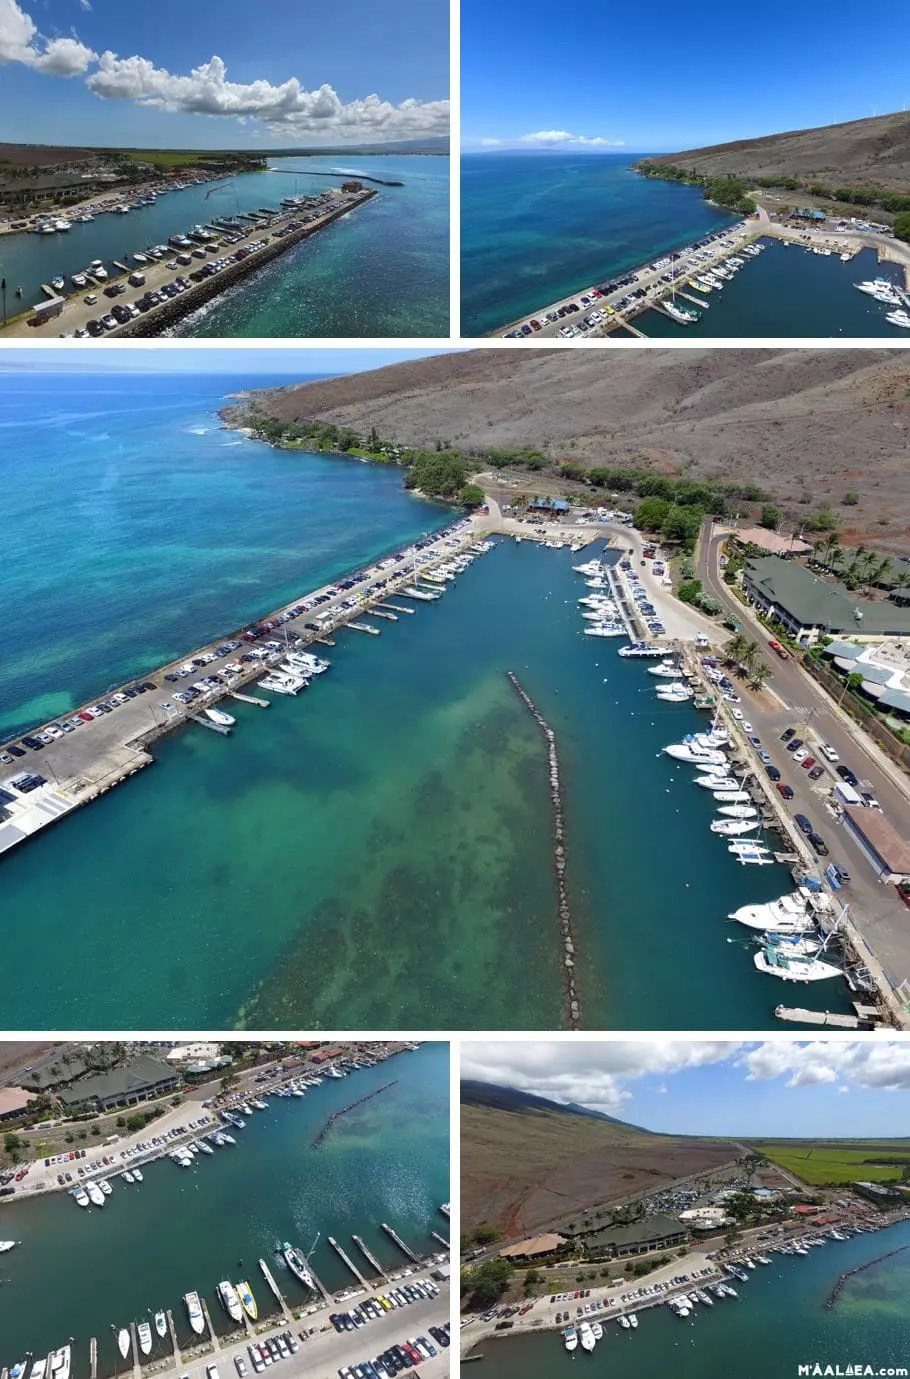 Maalaea Harbor slips